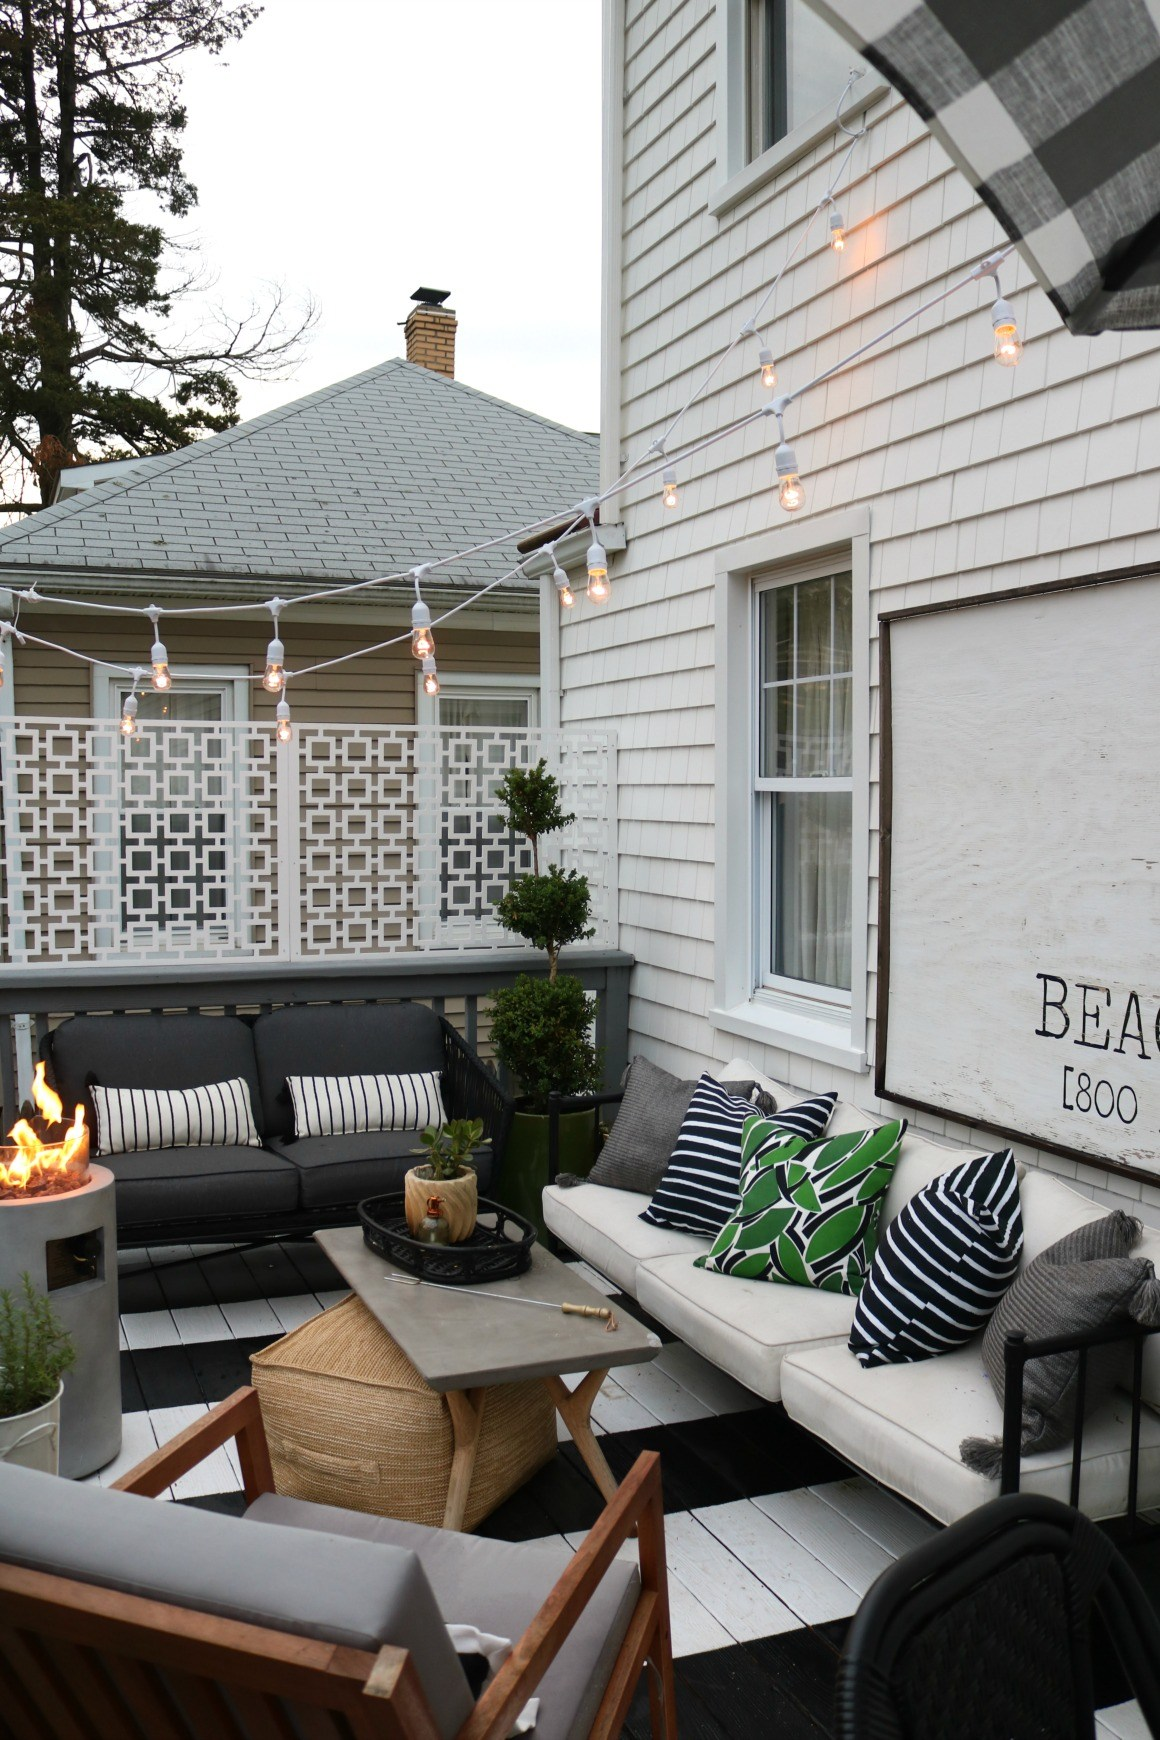 Entertaining Outdoors Using String Lights - Summer Essentials Patio Tour by Nesting With Grace